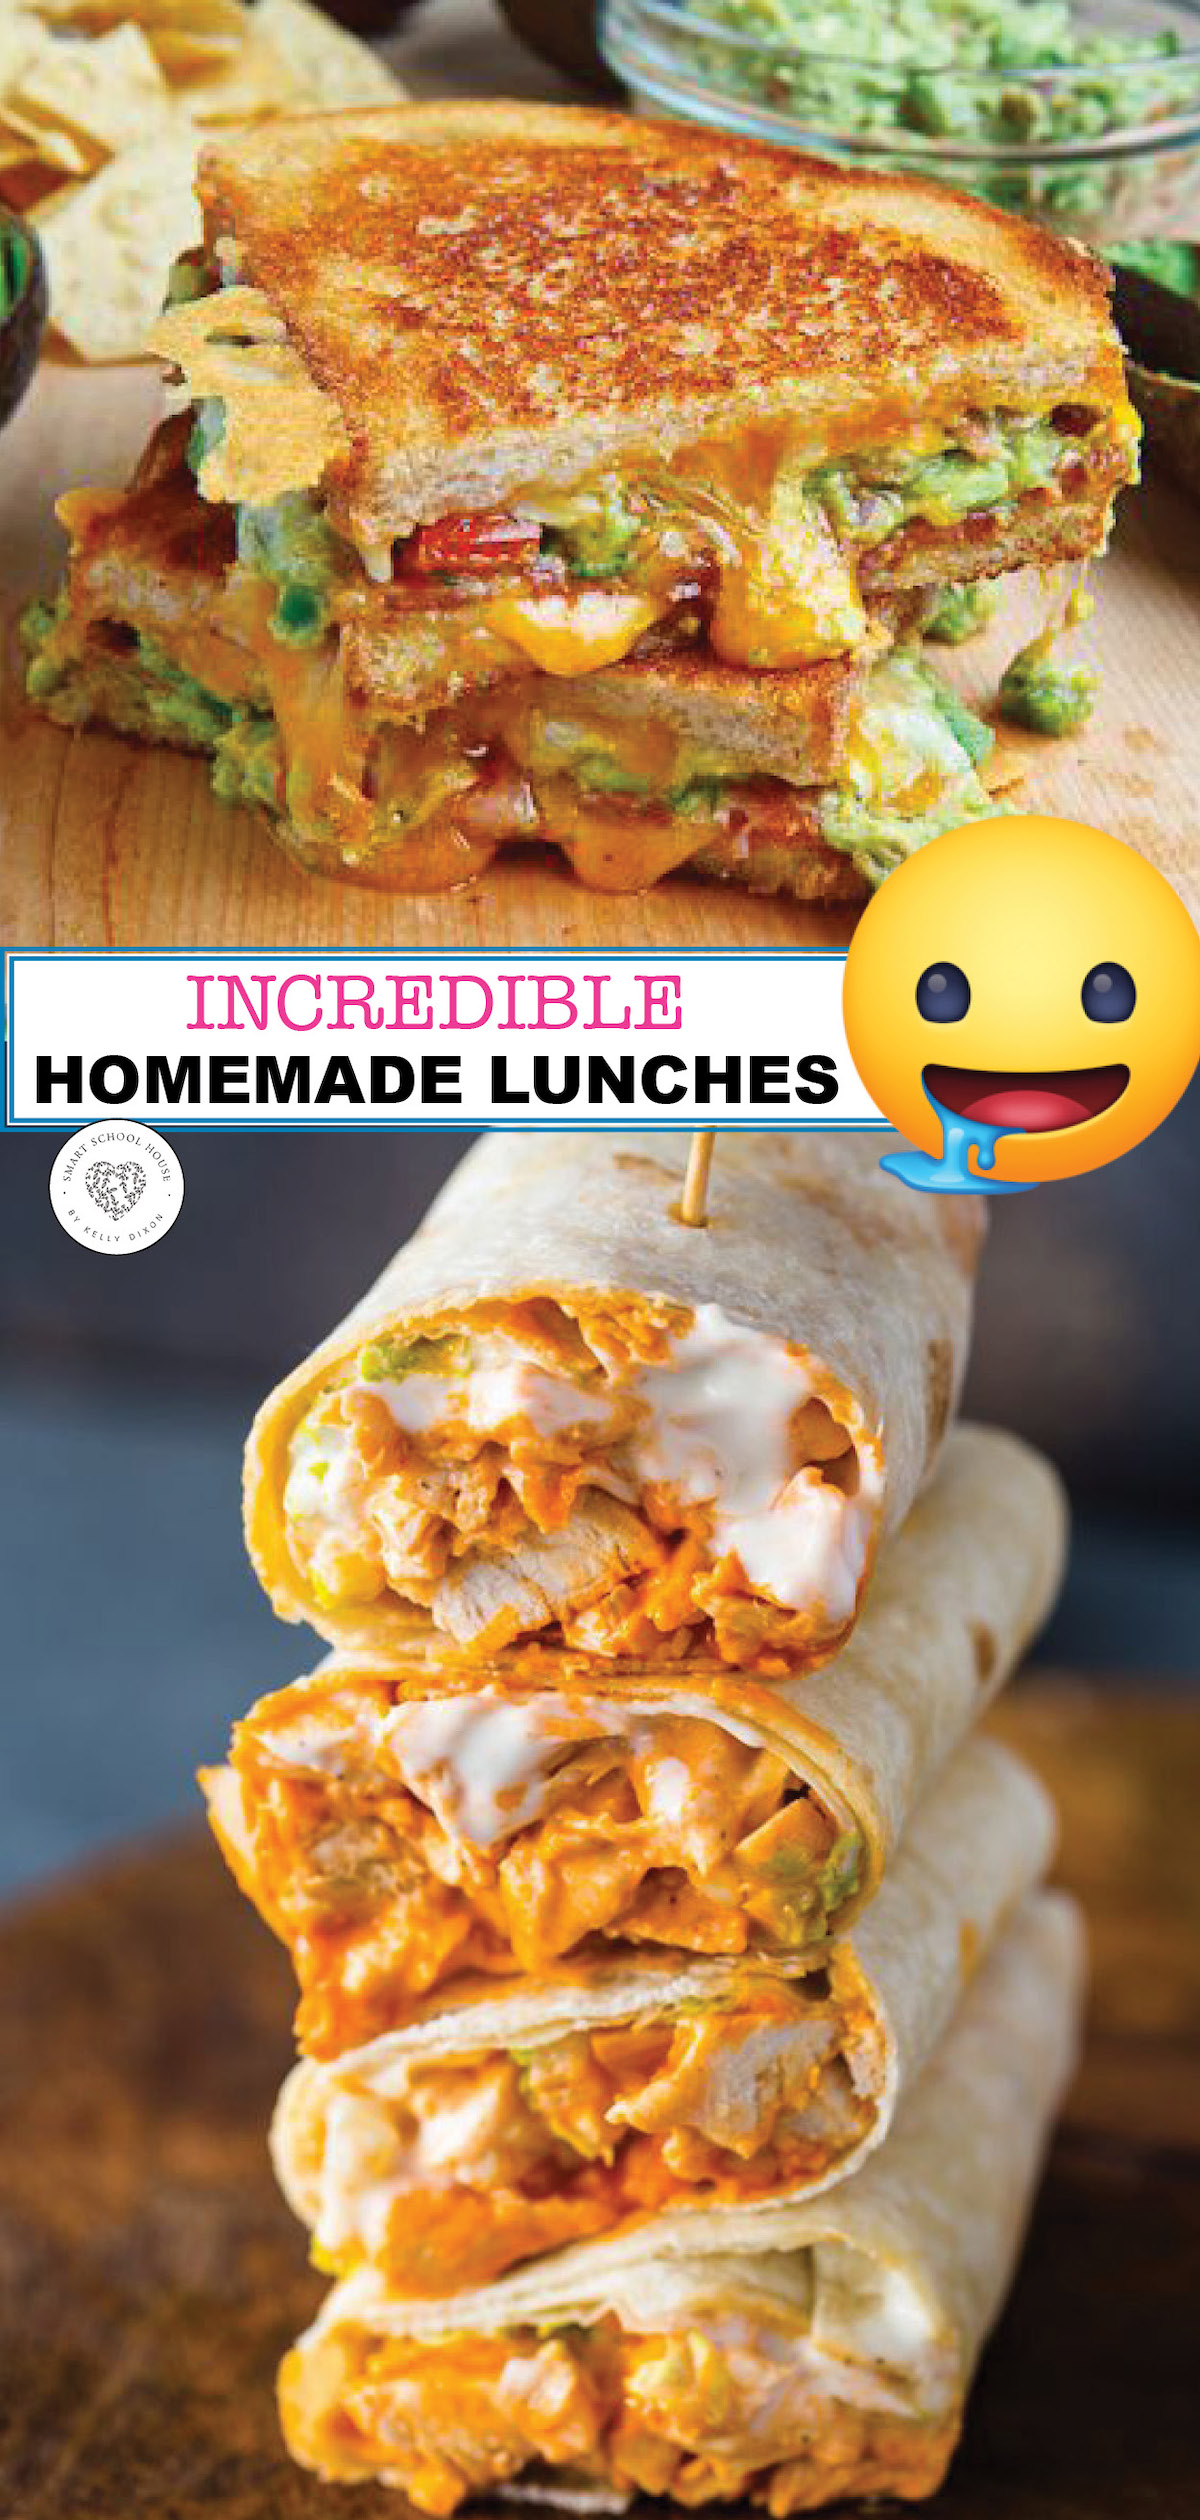 Incredible Homemade Lunches